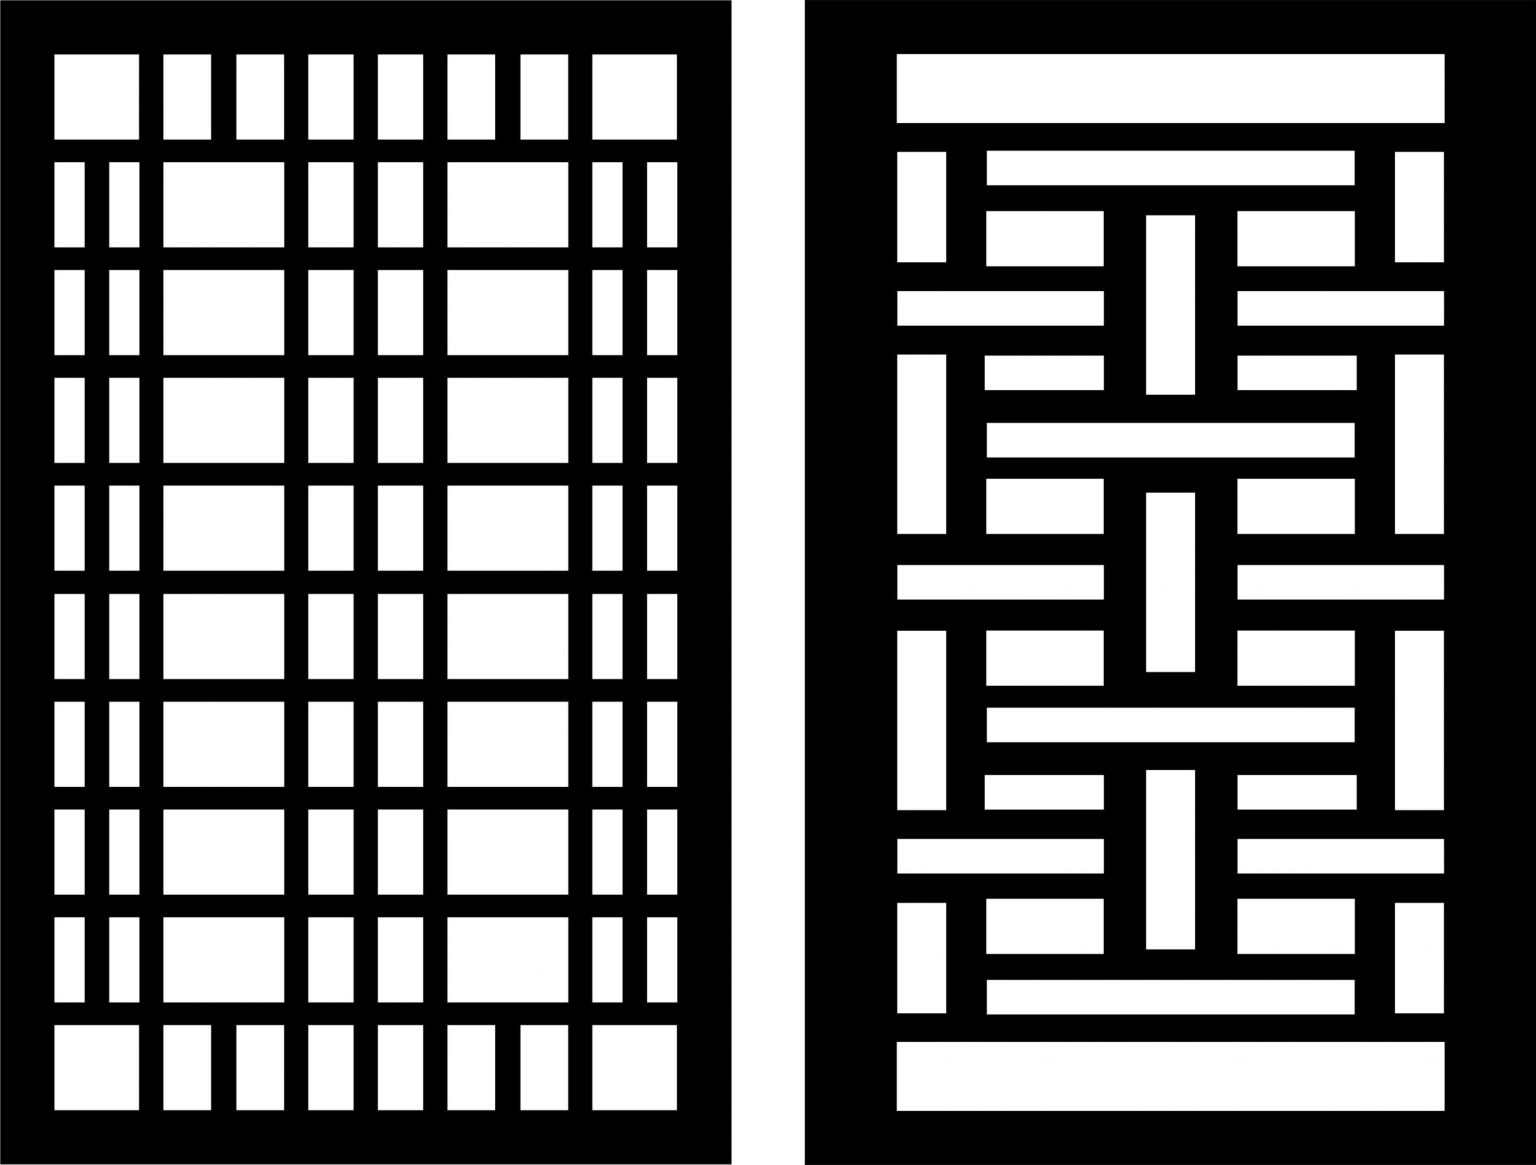 Decorative Screen Patterns For Laser Cutting 20 Free DXF File